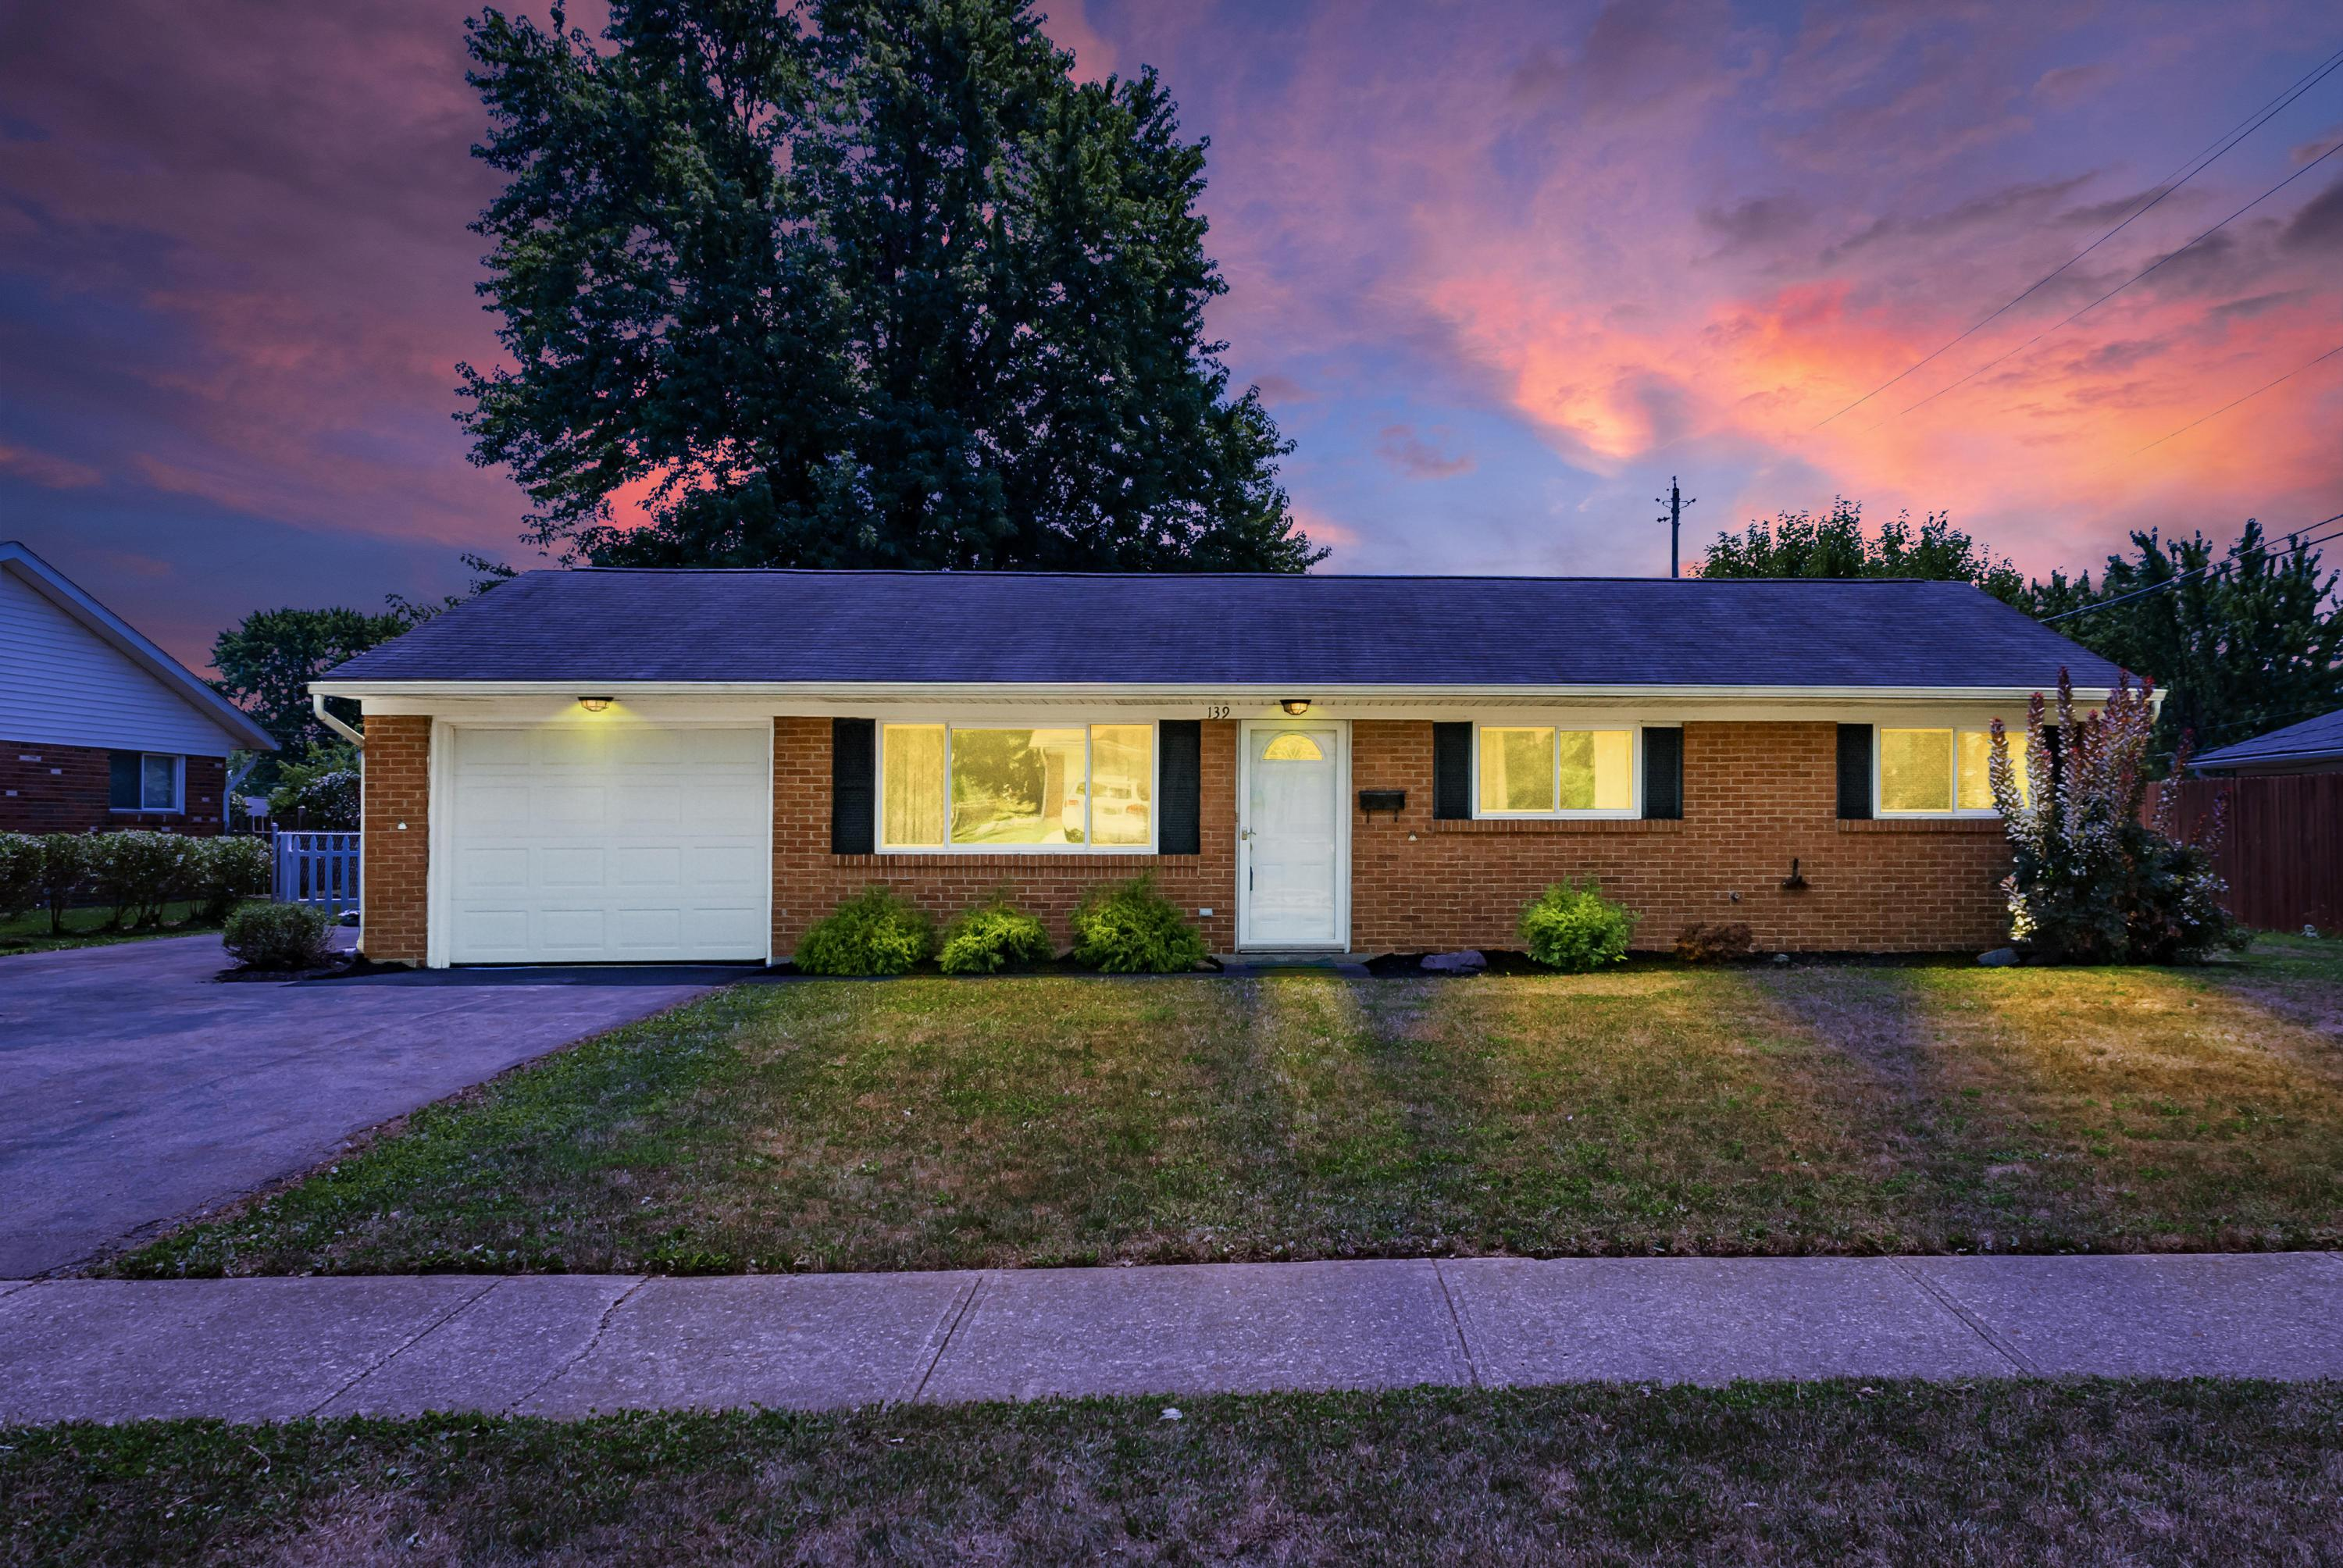 139 Barcelona Avenue, Westerville, Ohio 43081, 3 Bedrooms Bedrooms, ,1 BathroomBathrooms,Residential,For Sale,Barcelona,220025805